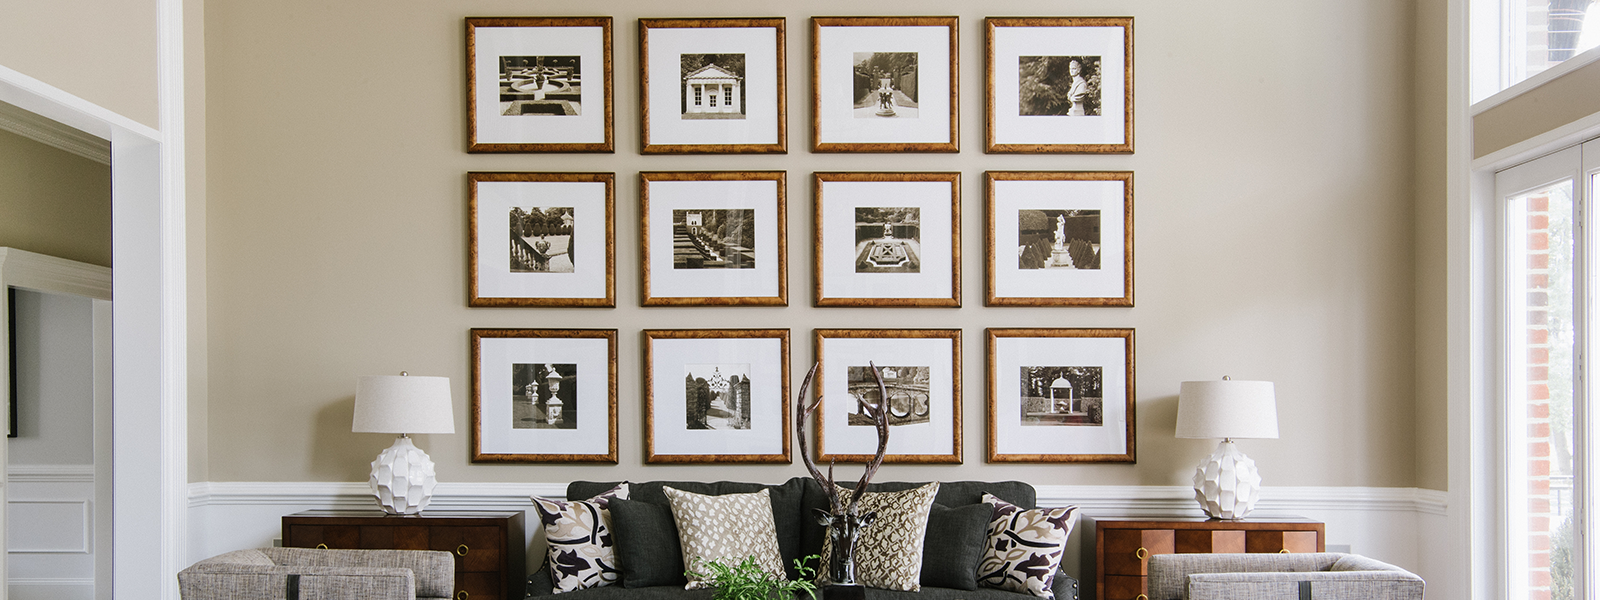 Gallery wall of black & white photos from Bountiful custom framing in Easton, Maryland